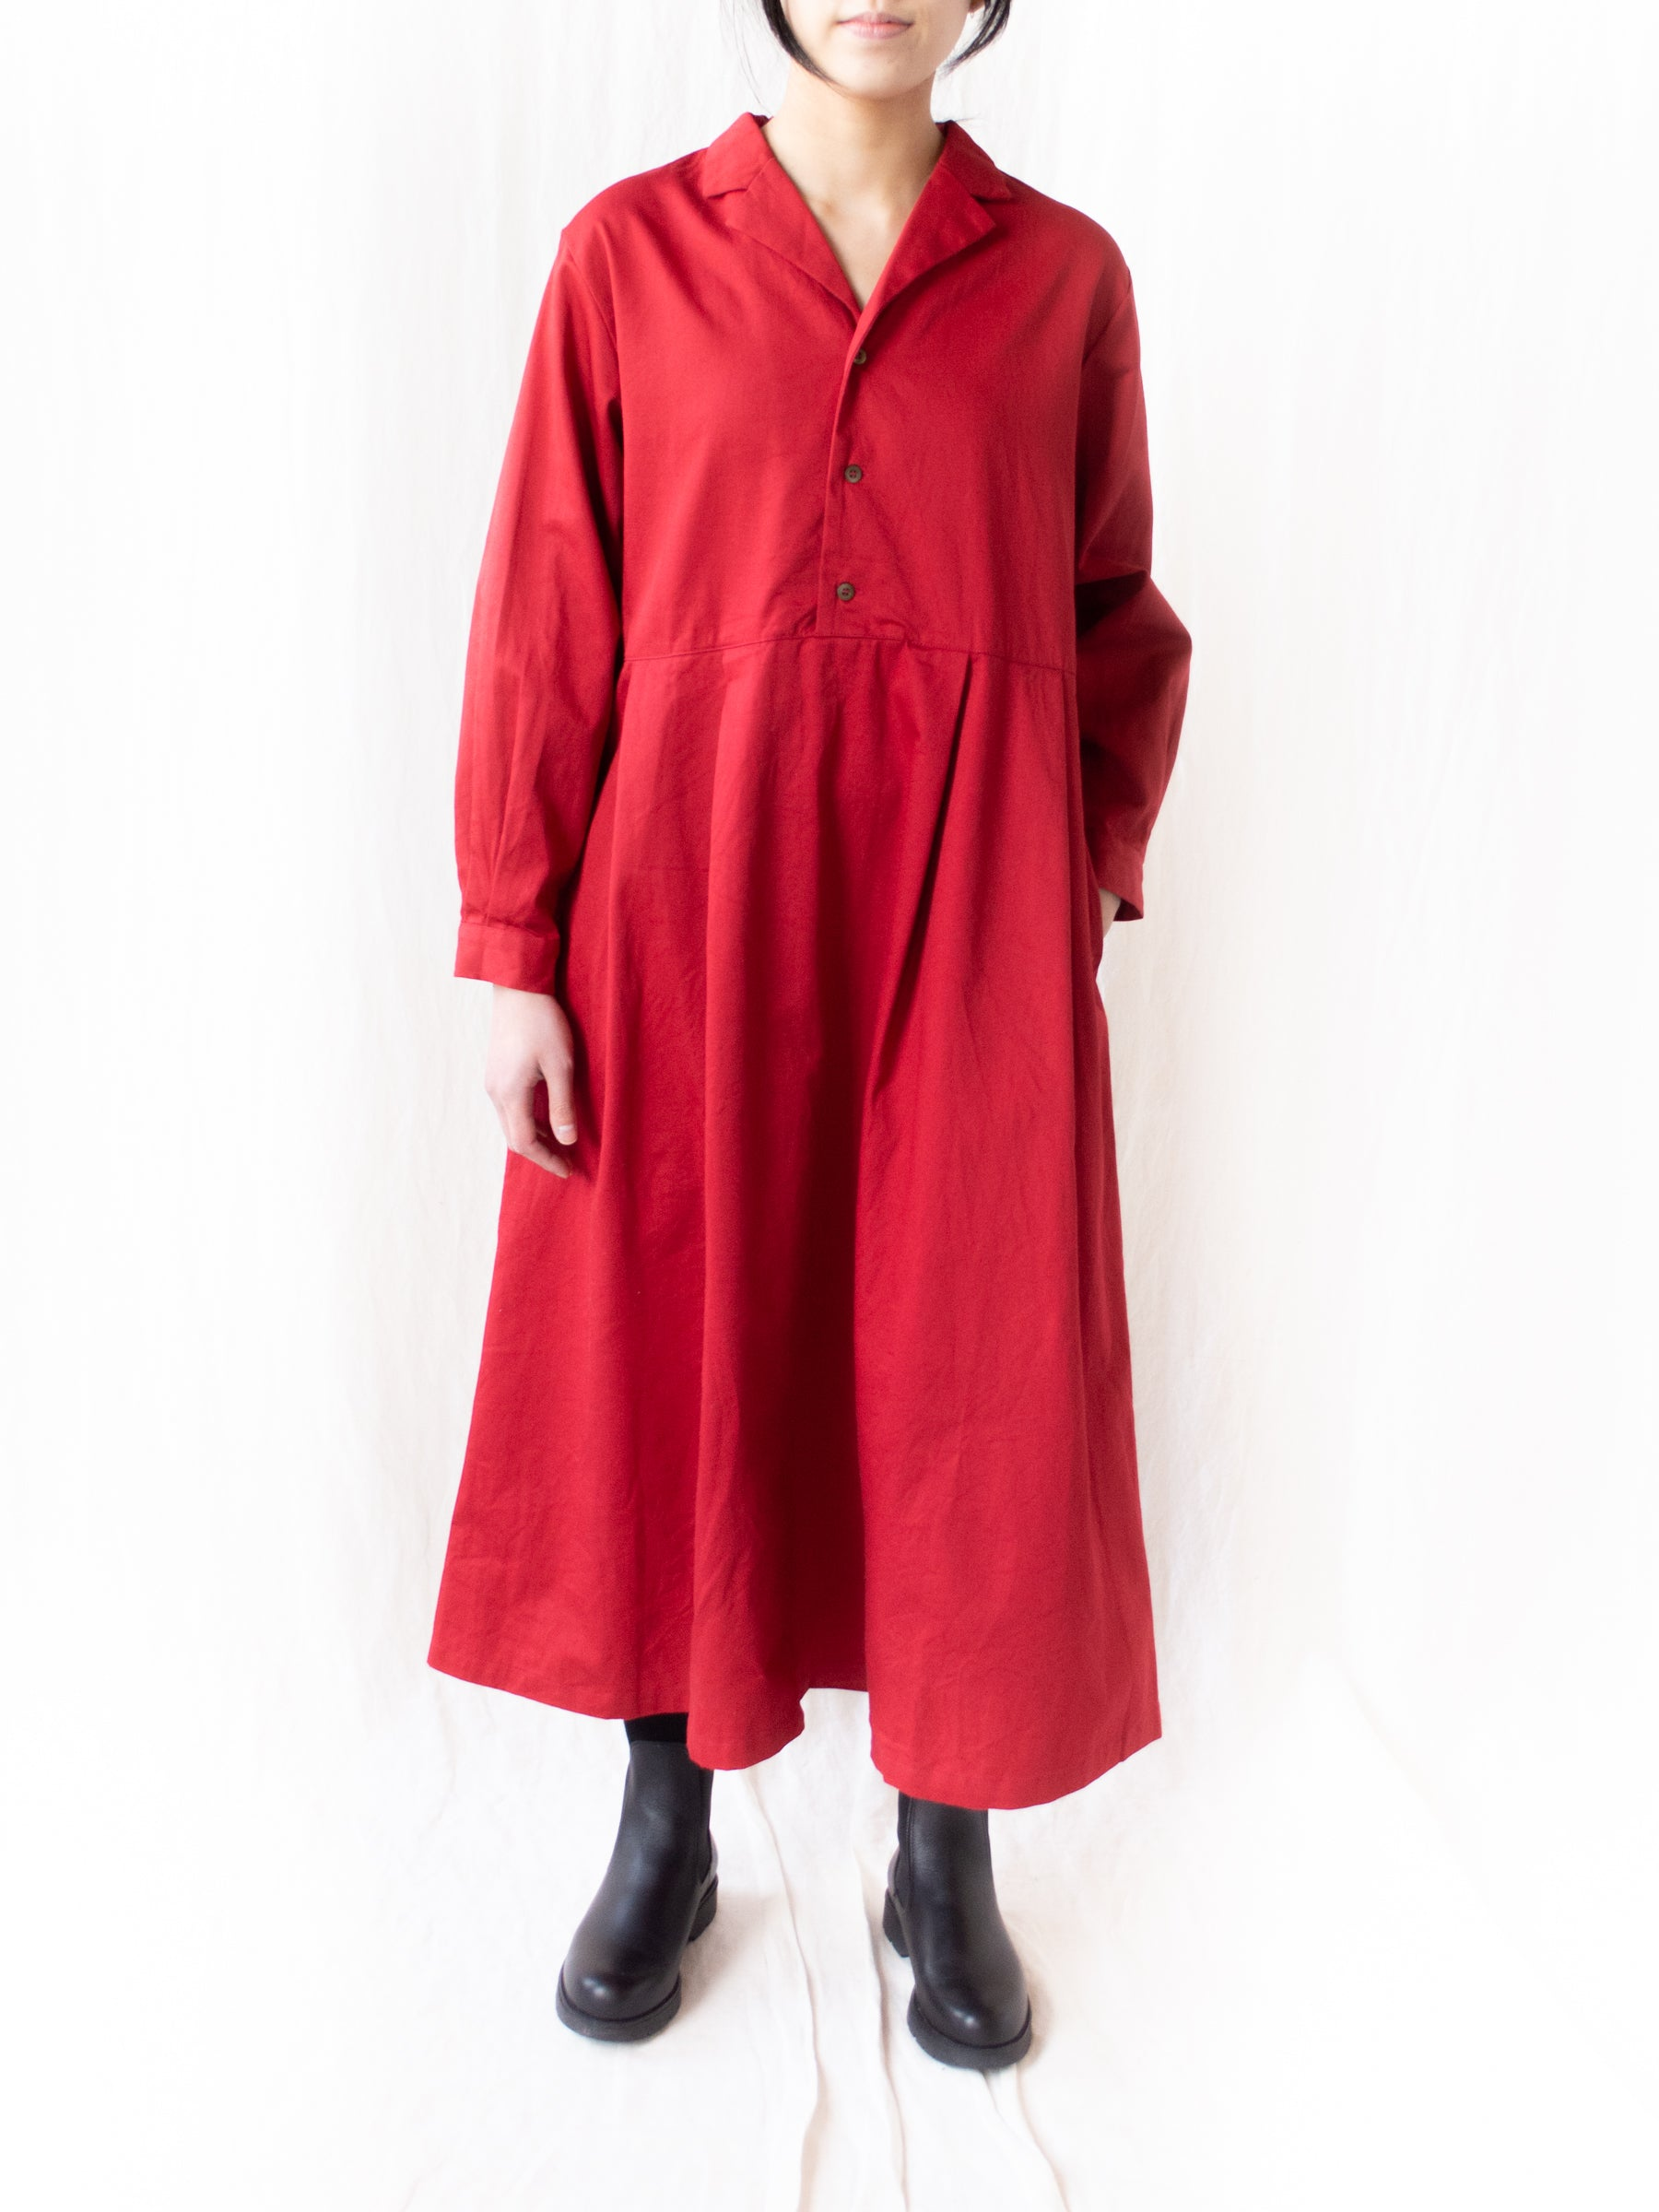 Open Collar Dress - Red